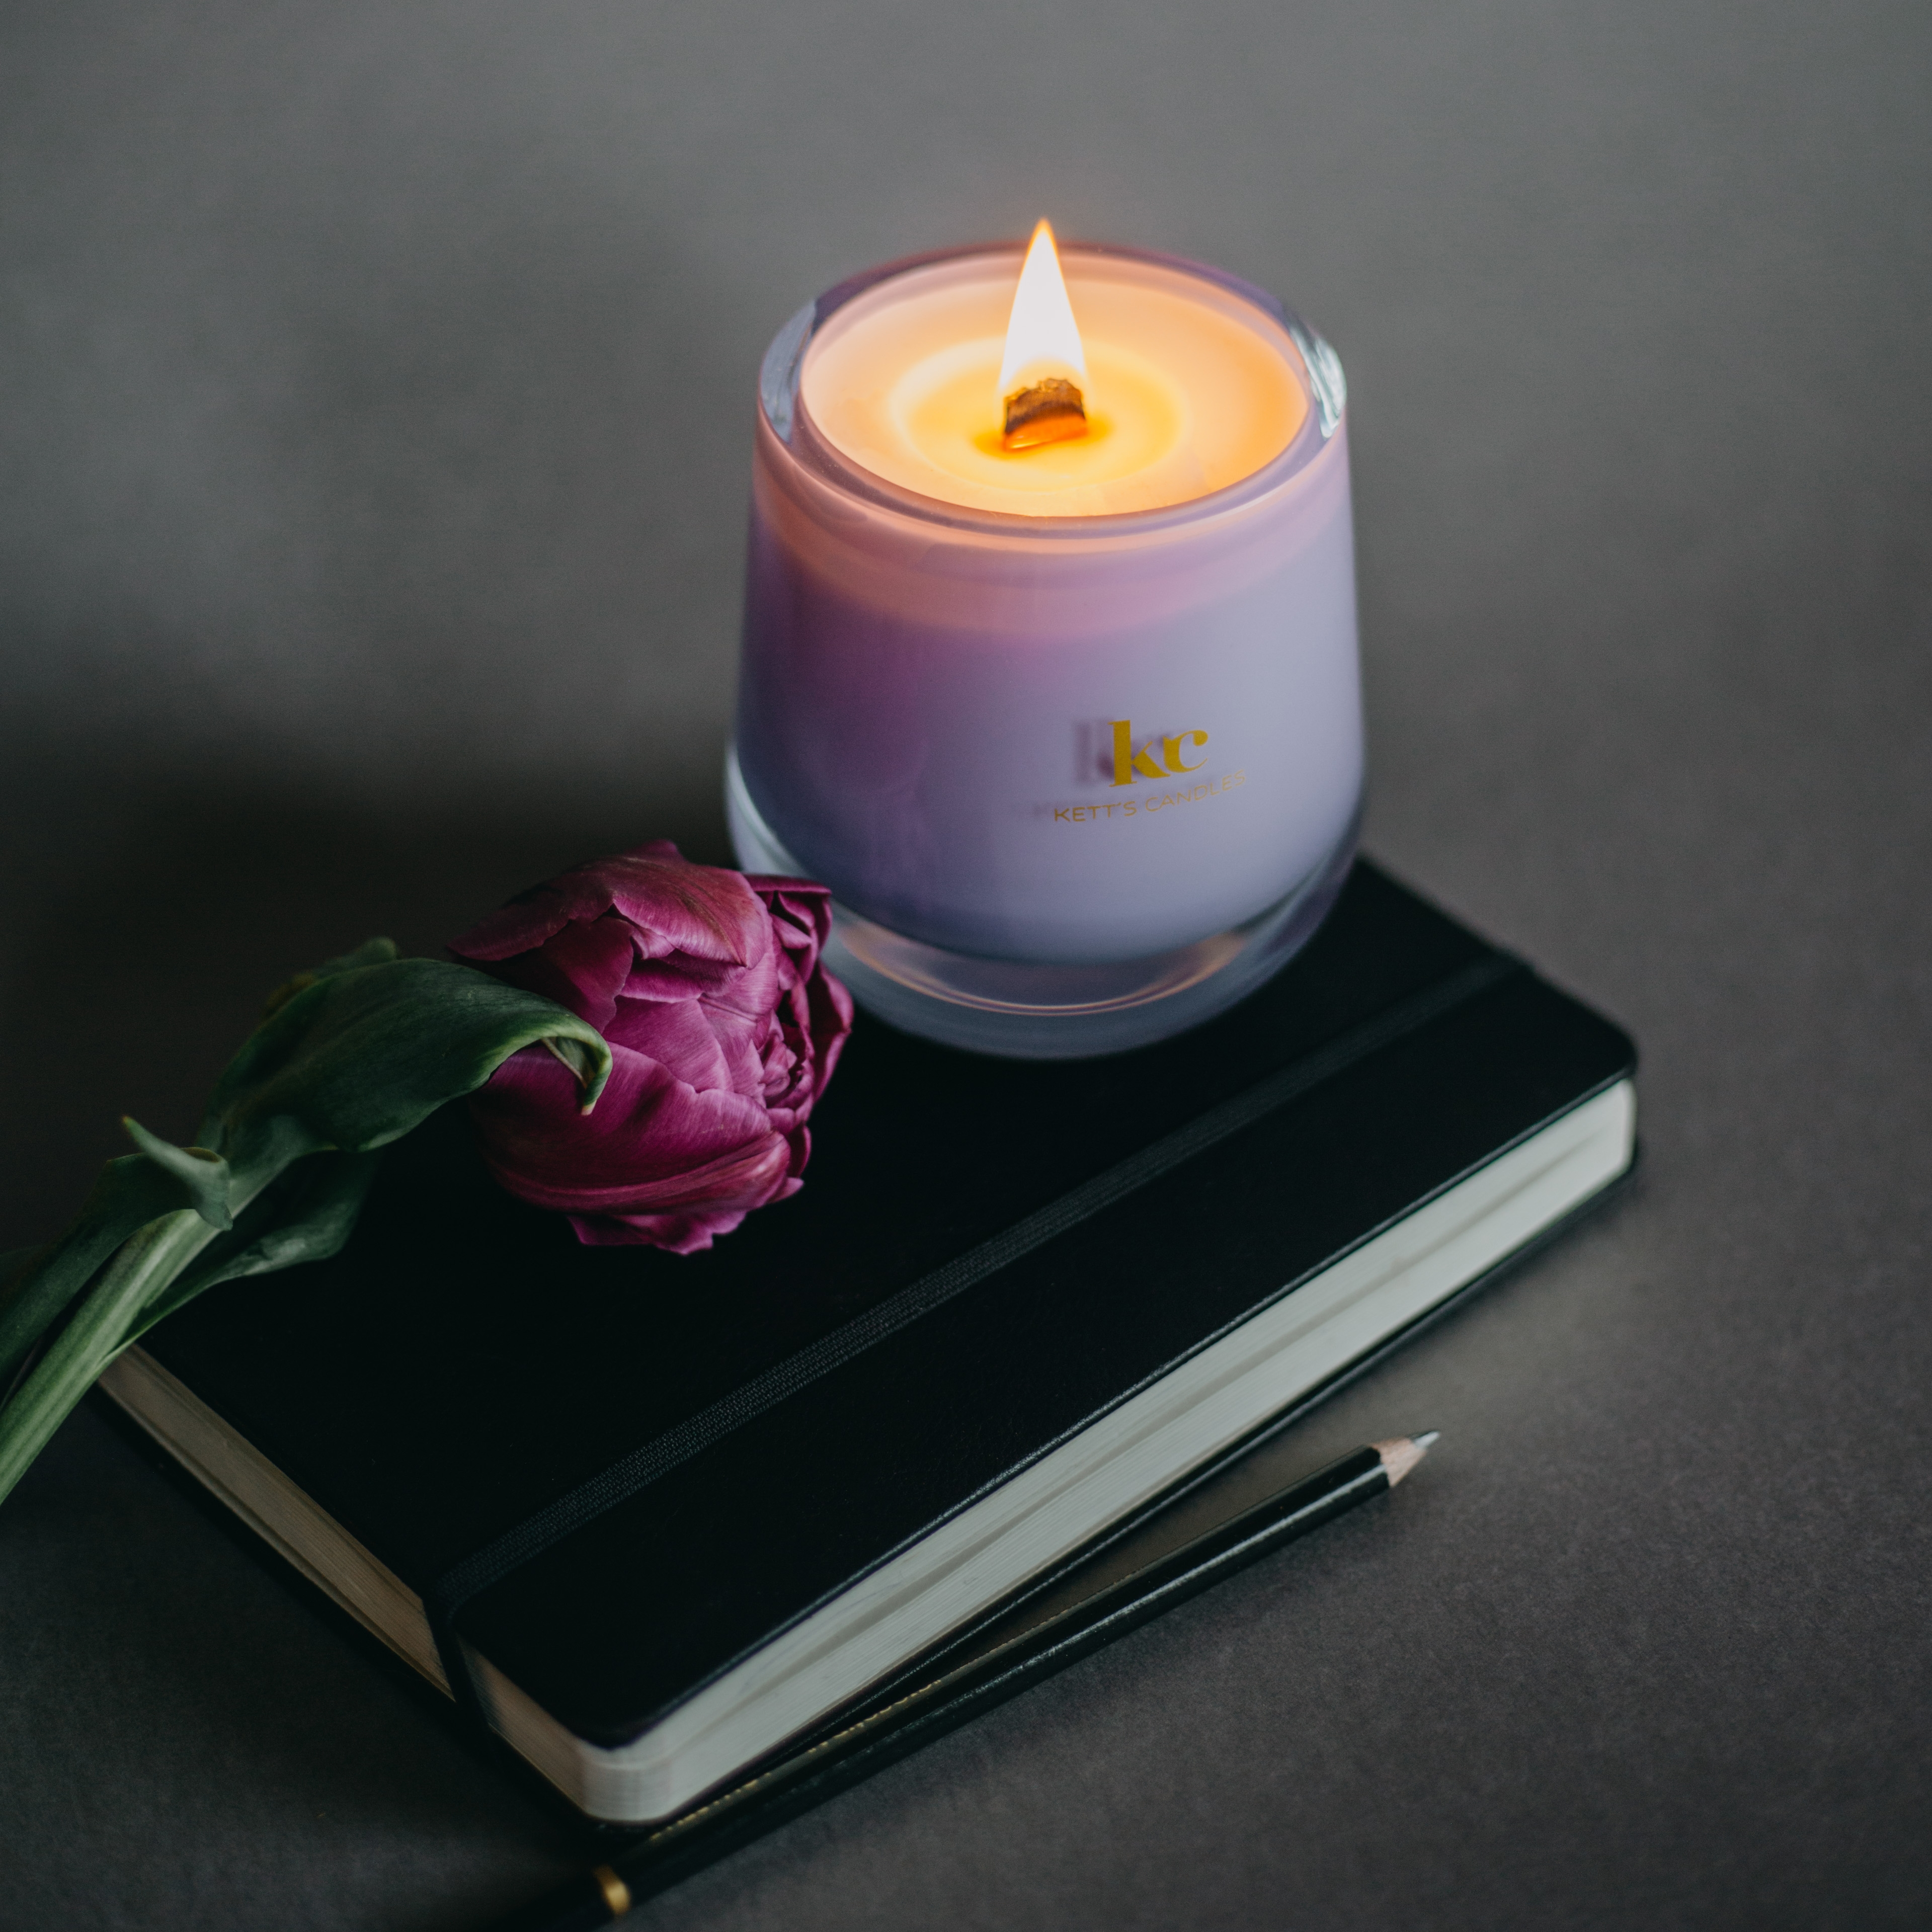 KETT'S CANDLES - Luxury Scented Experience